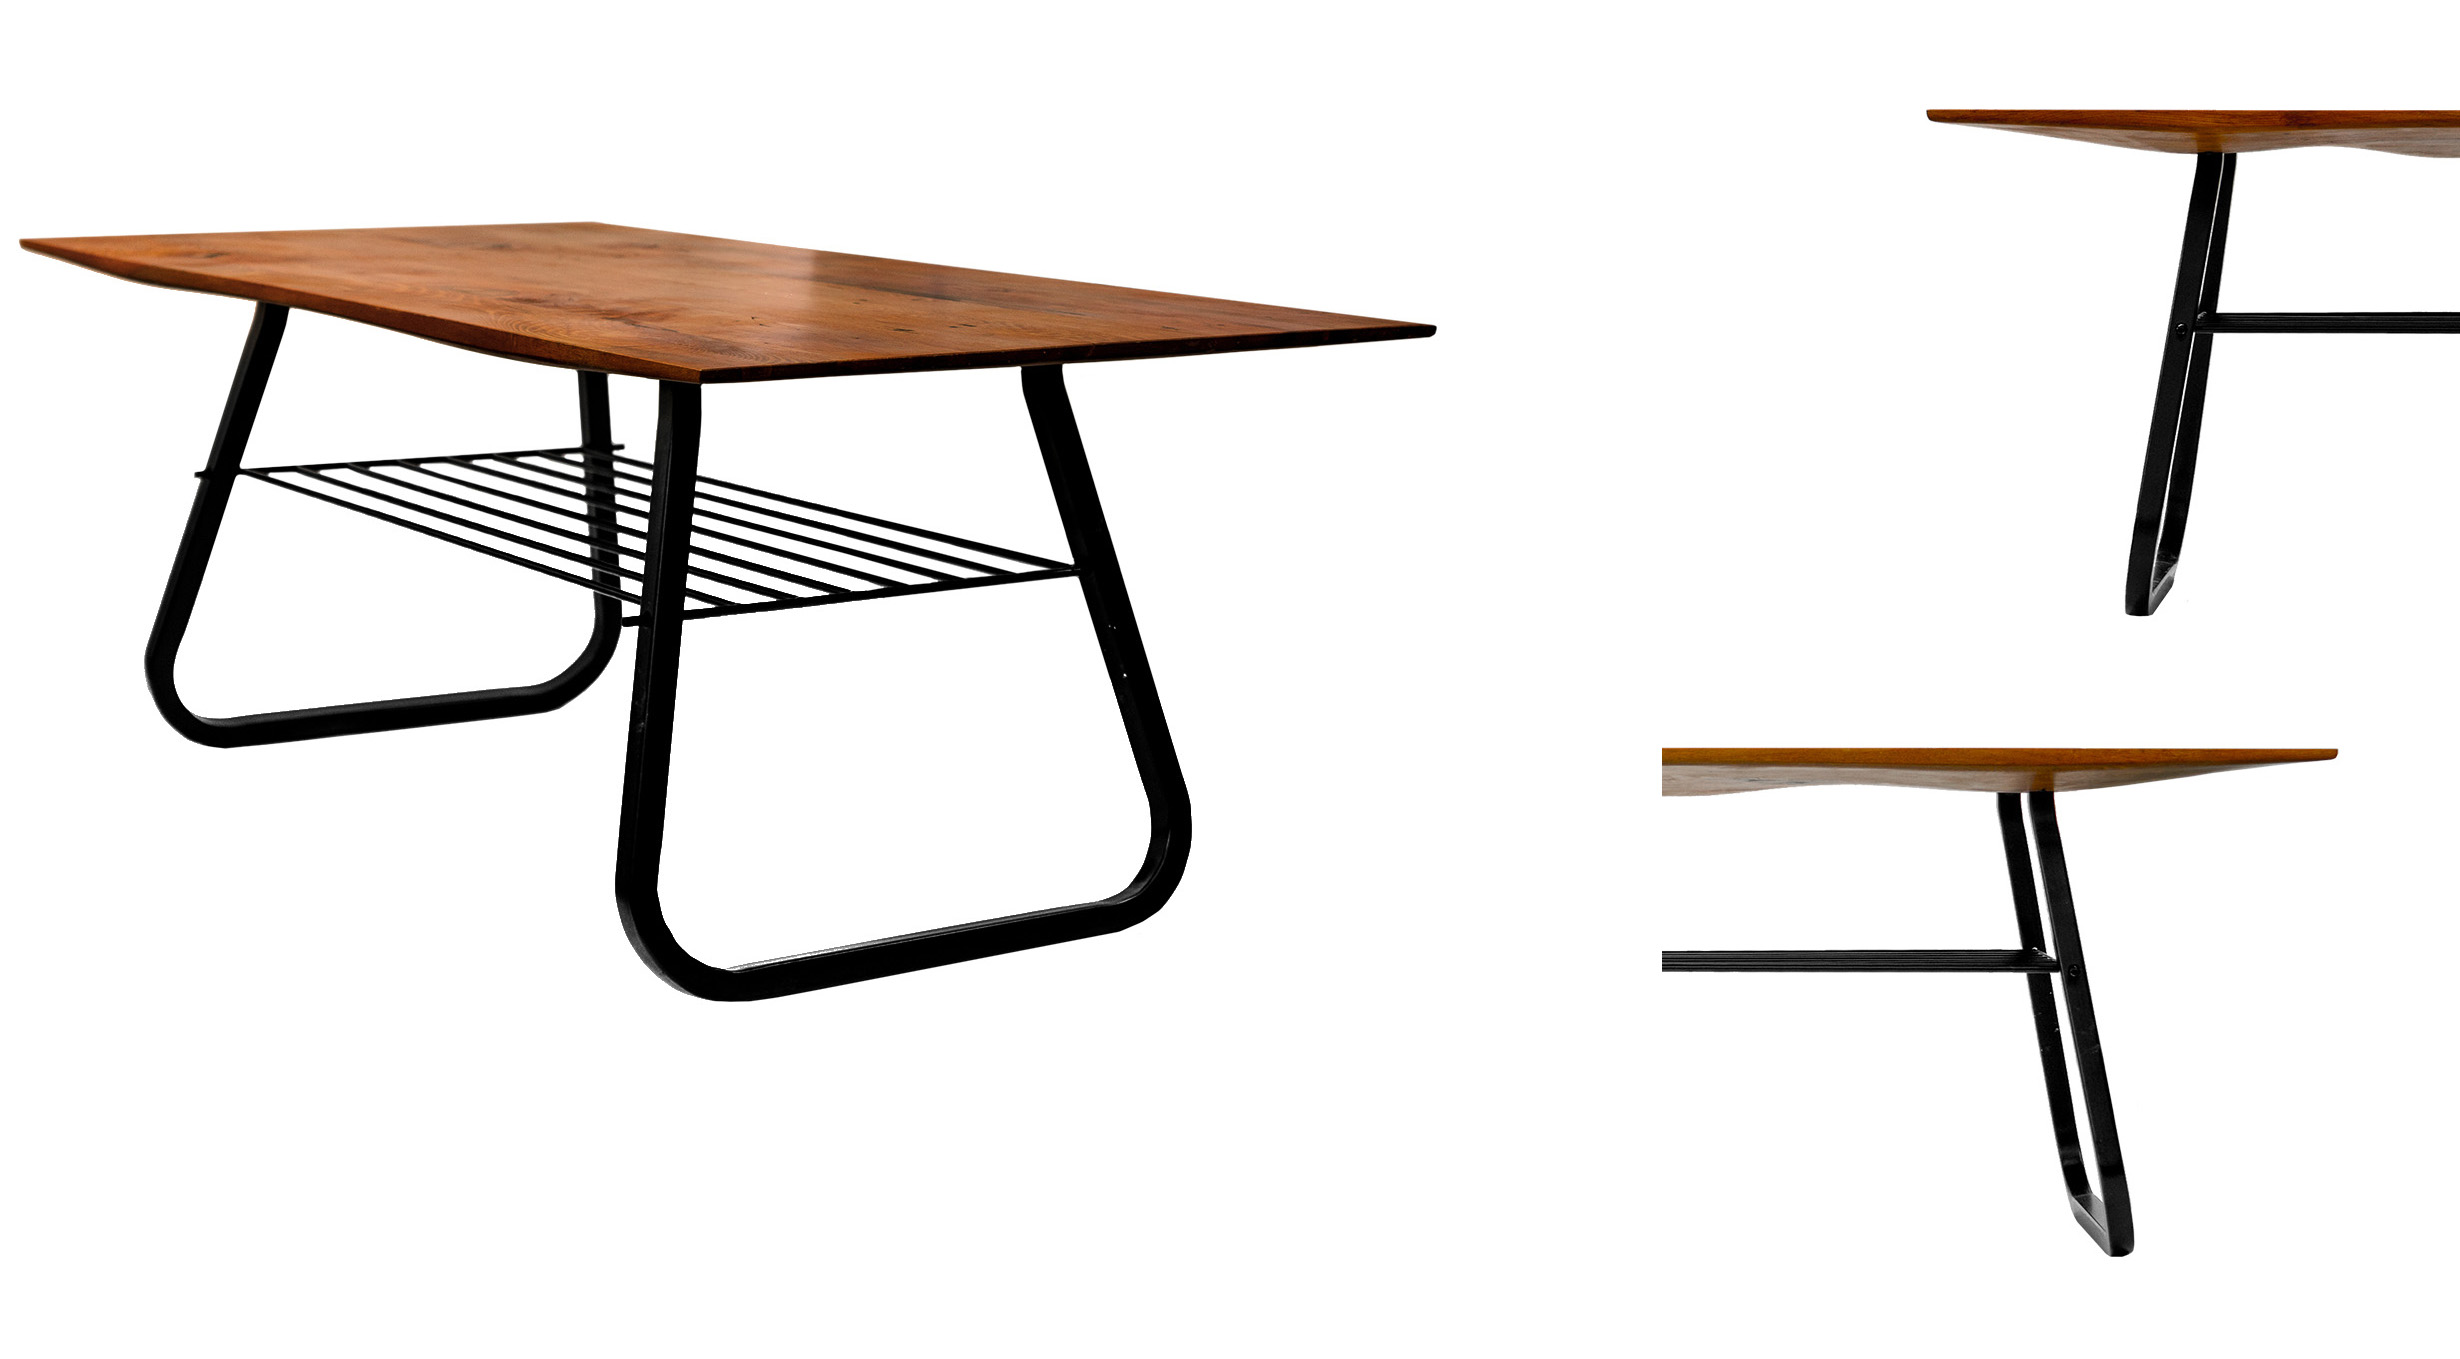 Vessel: a pair of tables for Waiheke; recyled Rimu and steel